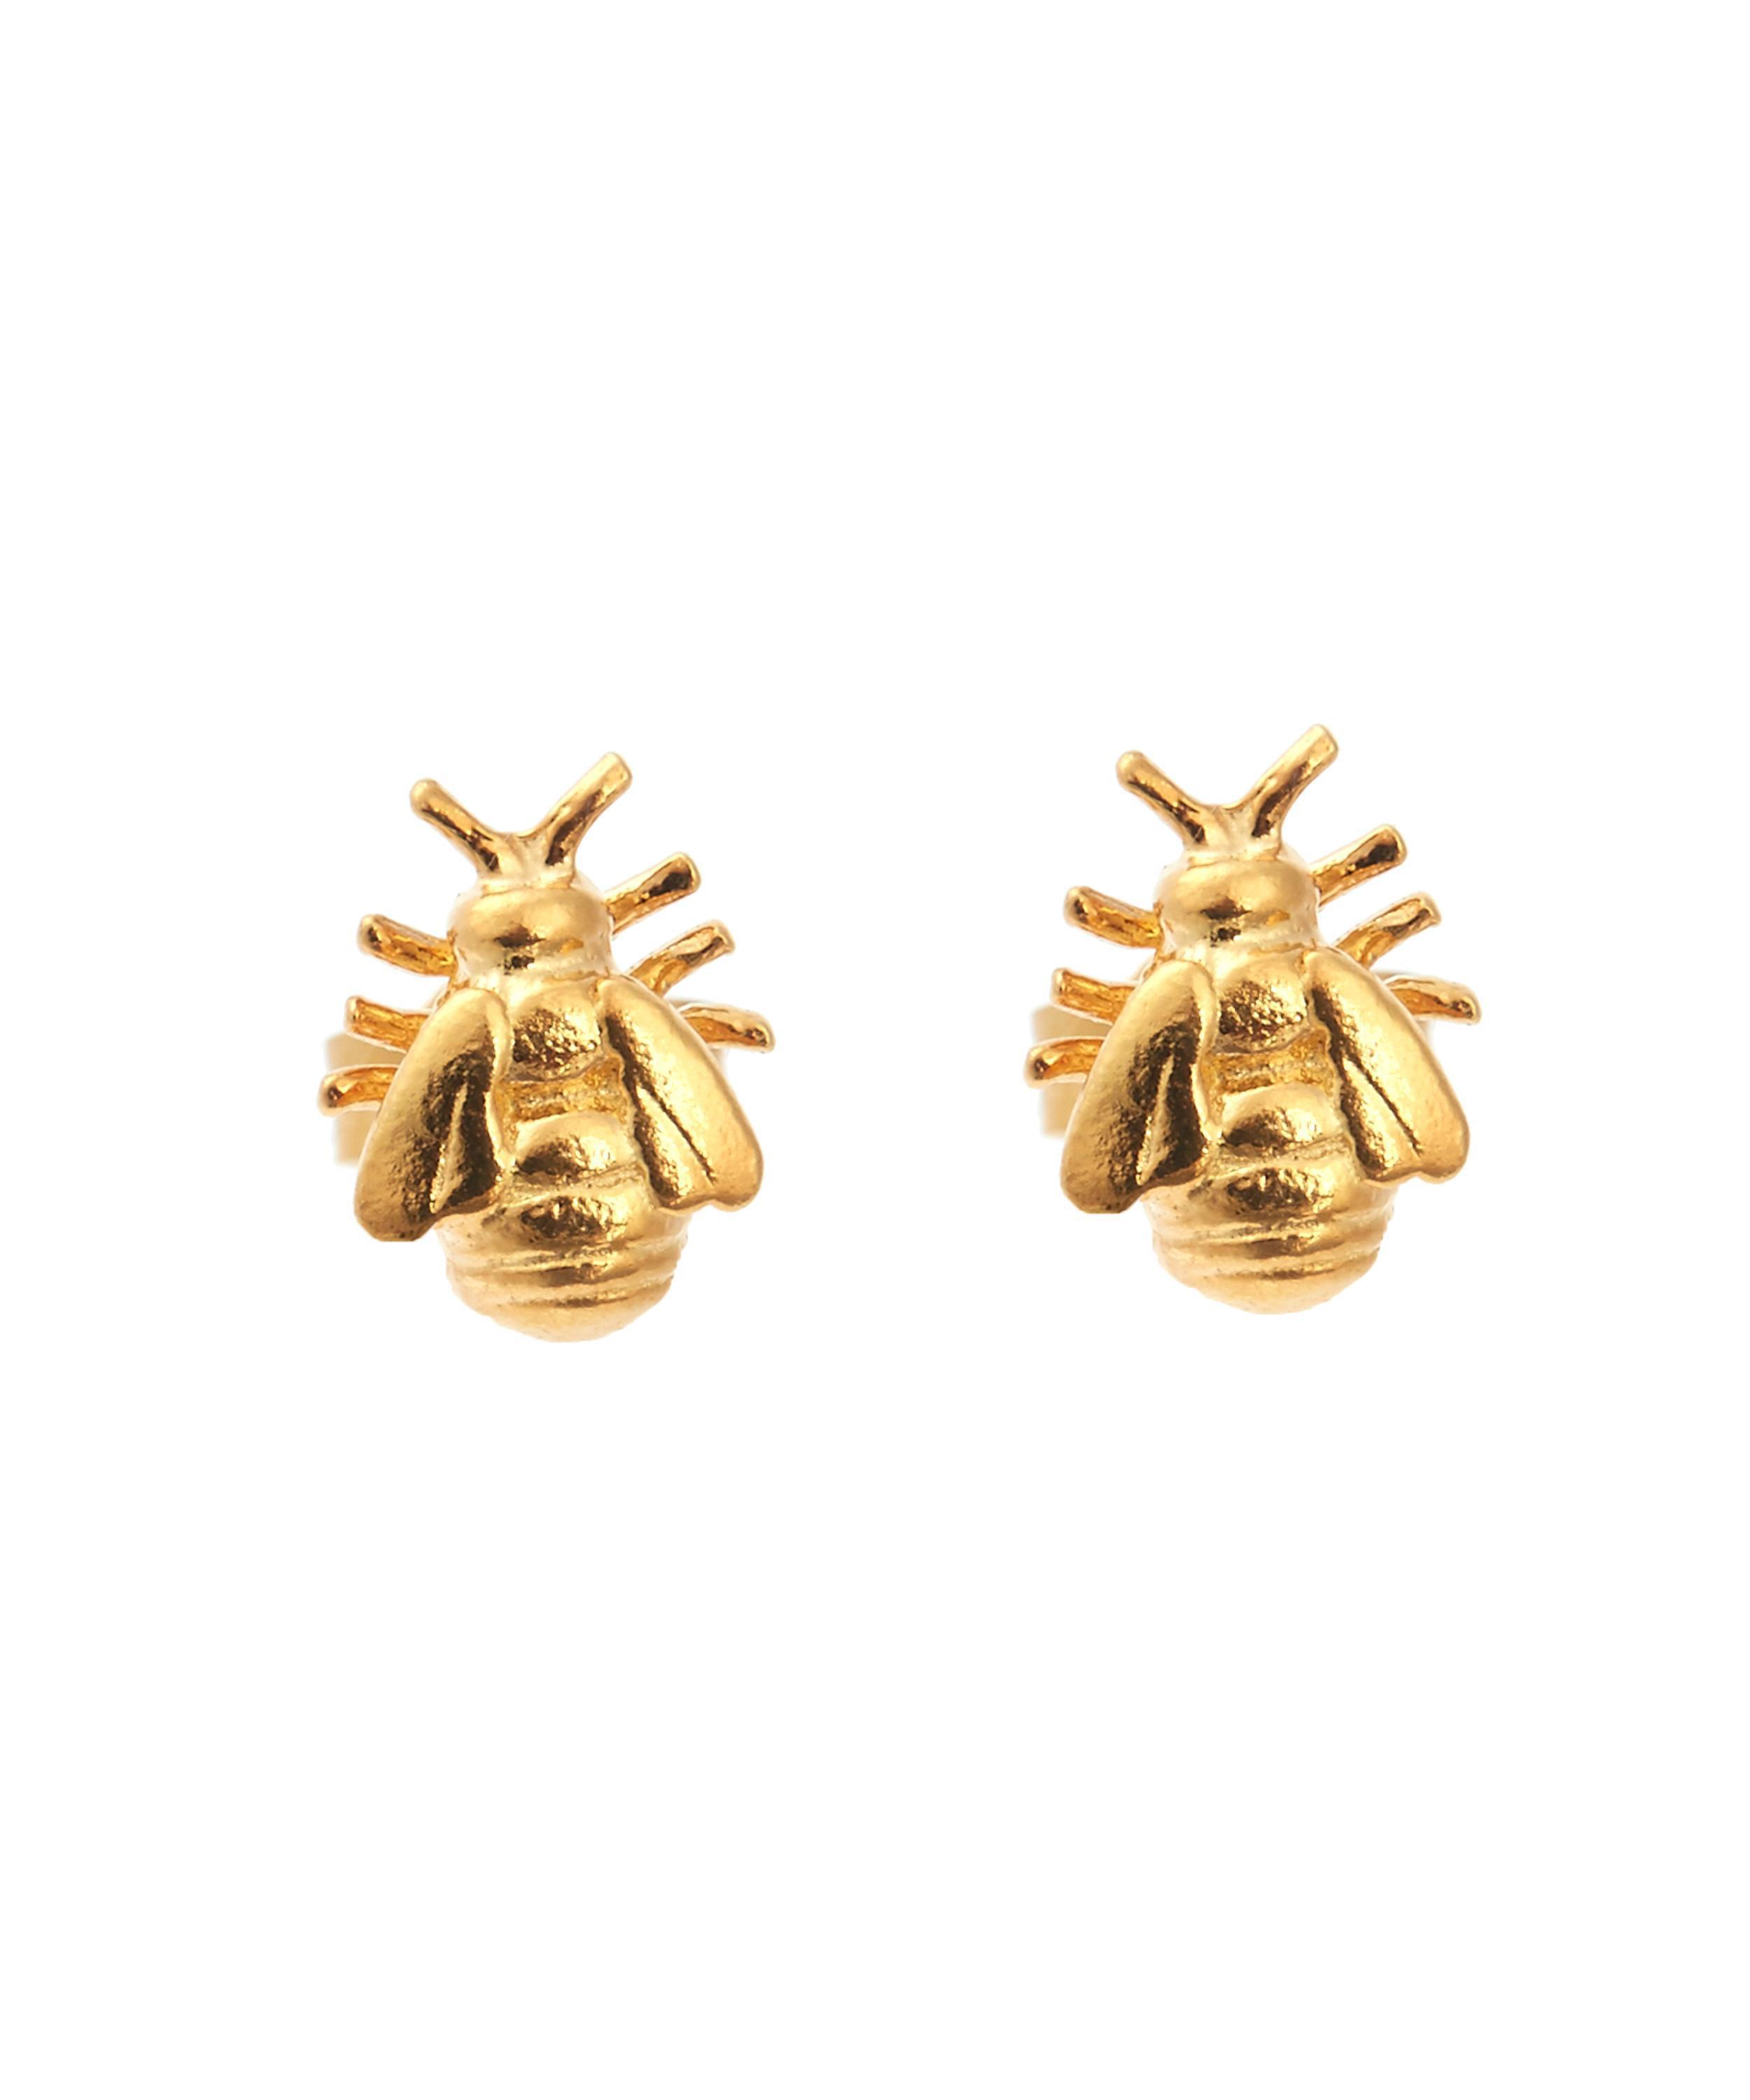 sterling overstock free over earrings jewelry bee on stud orders watches shipping product honey silver